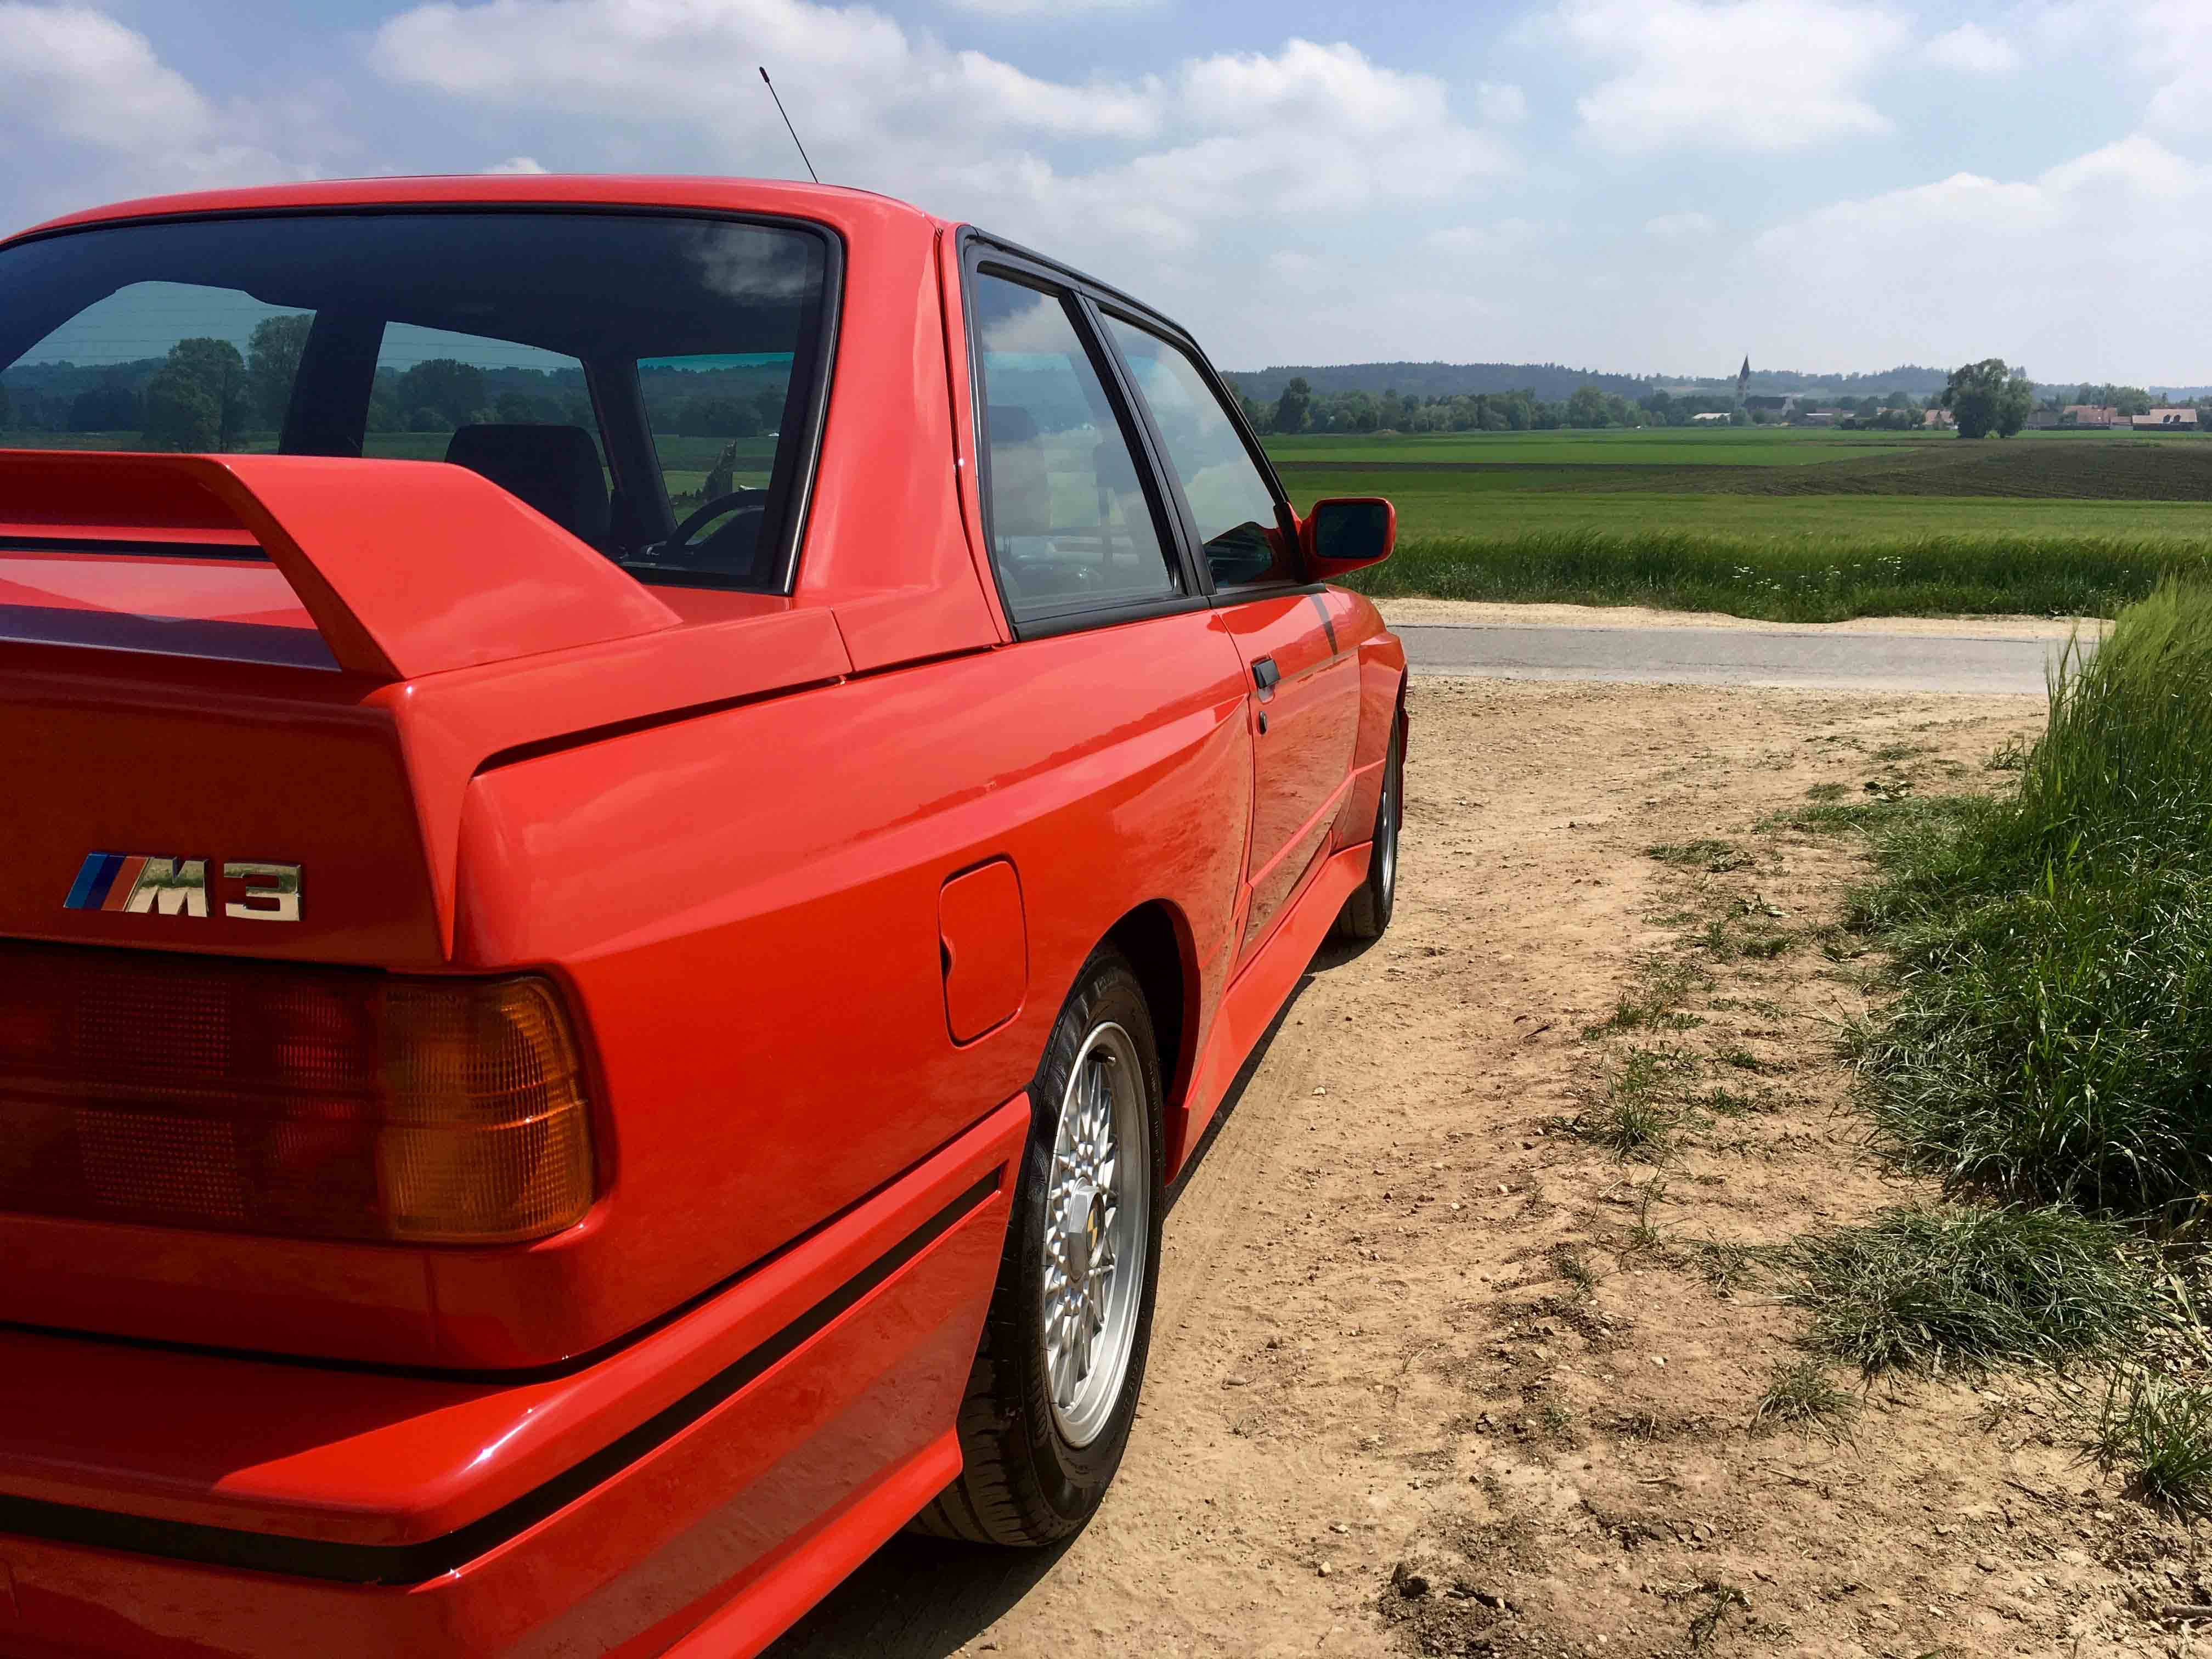 1987 BMW M3 rear wing and side